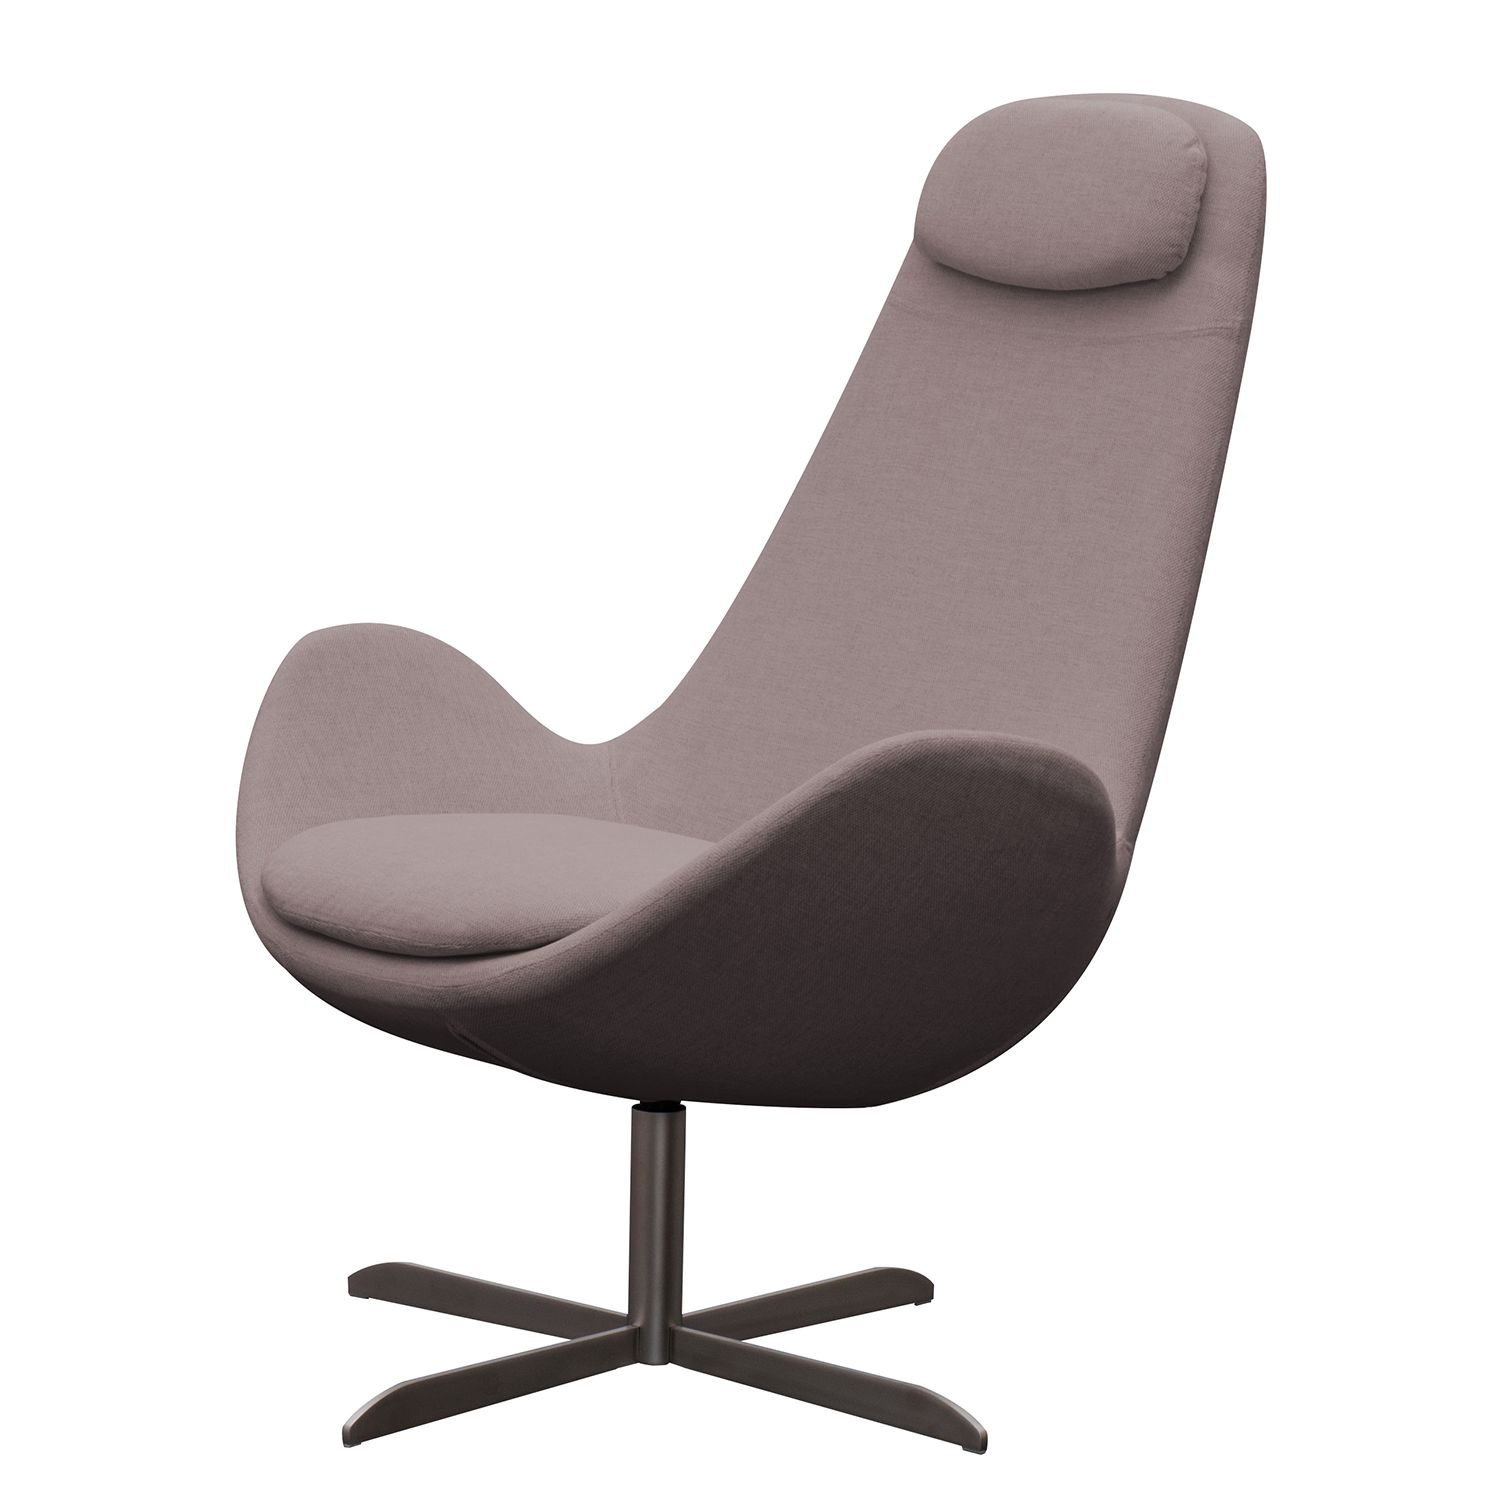 Fauteuil Houston I geweven stof, Studio Copenhagen